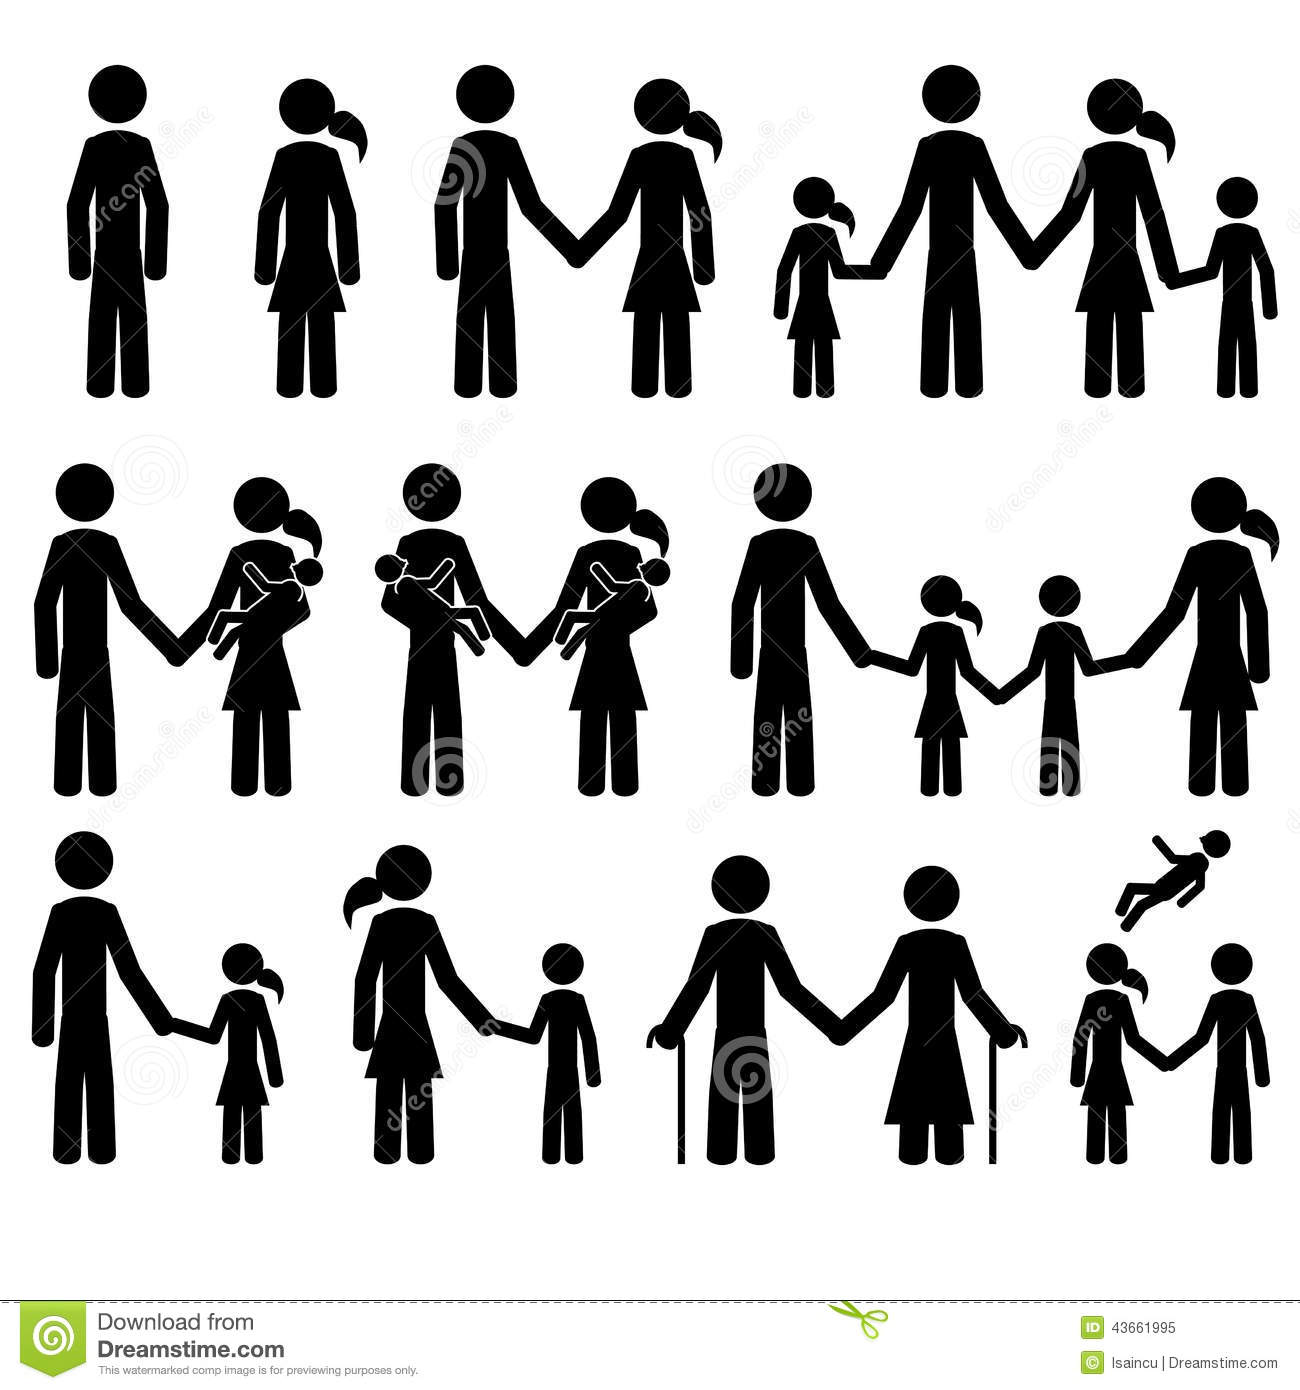 people stock vector. illustration of care, icon, couple - 43661995  dreamstime.com